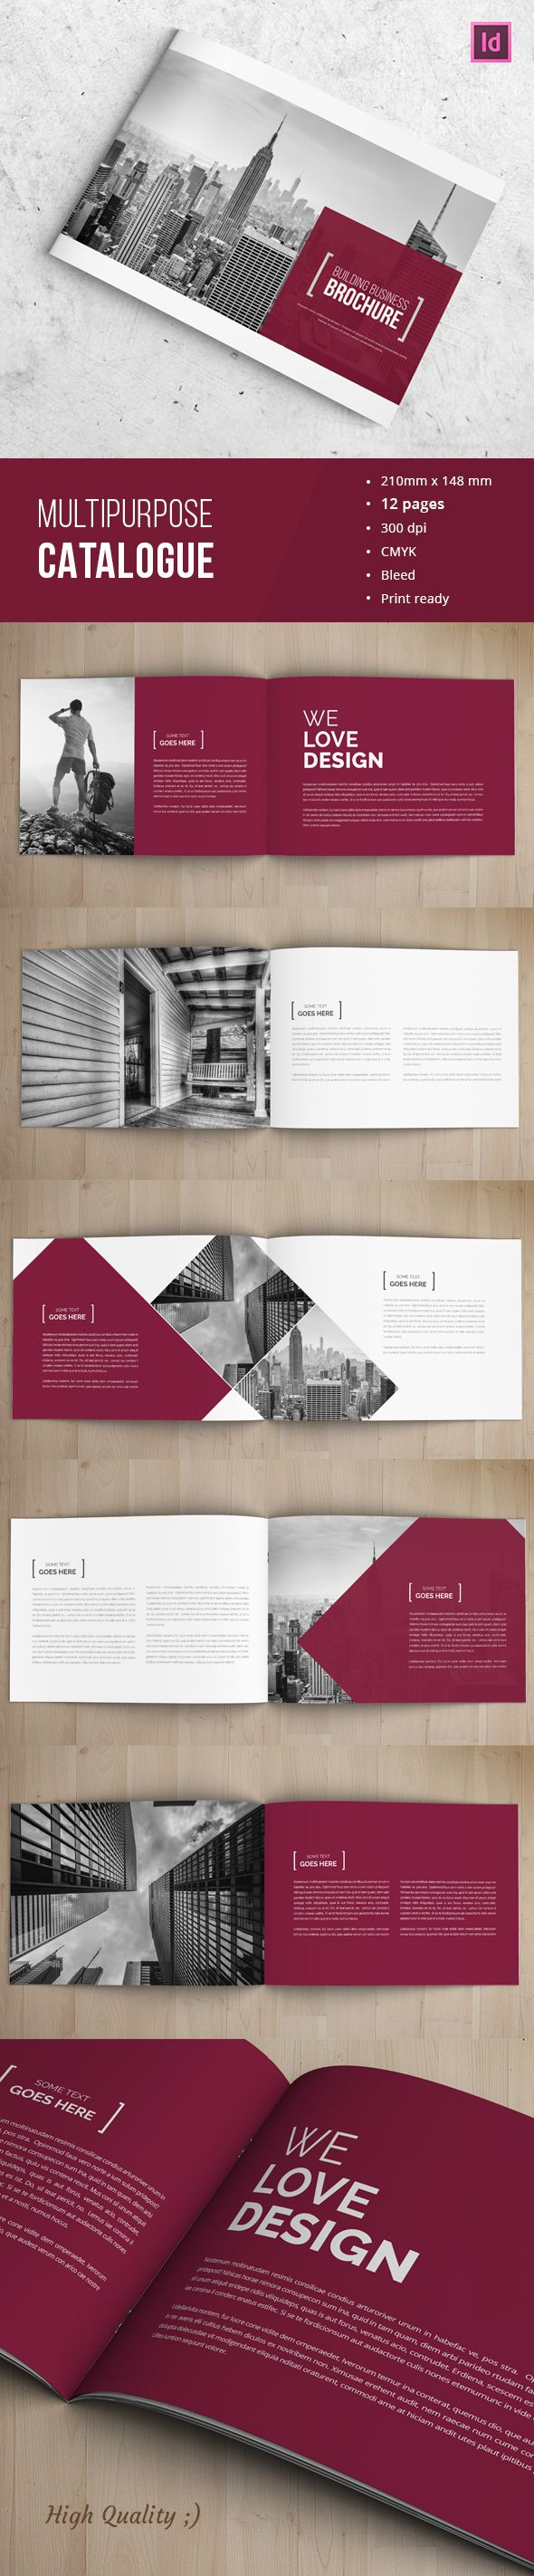 Corporate Indesign Brochure on Behance                              …